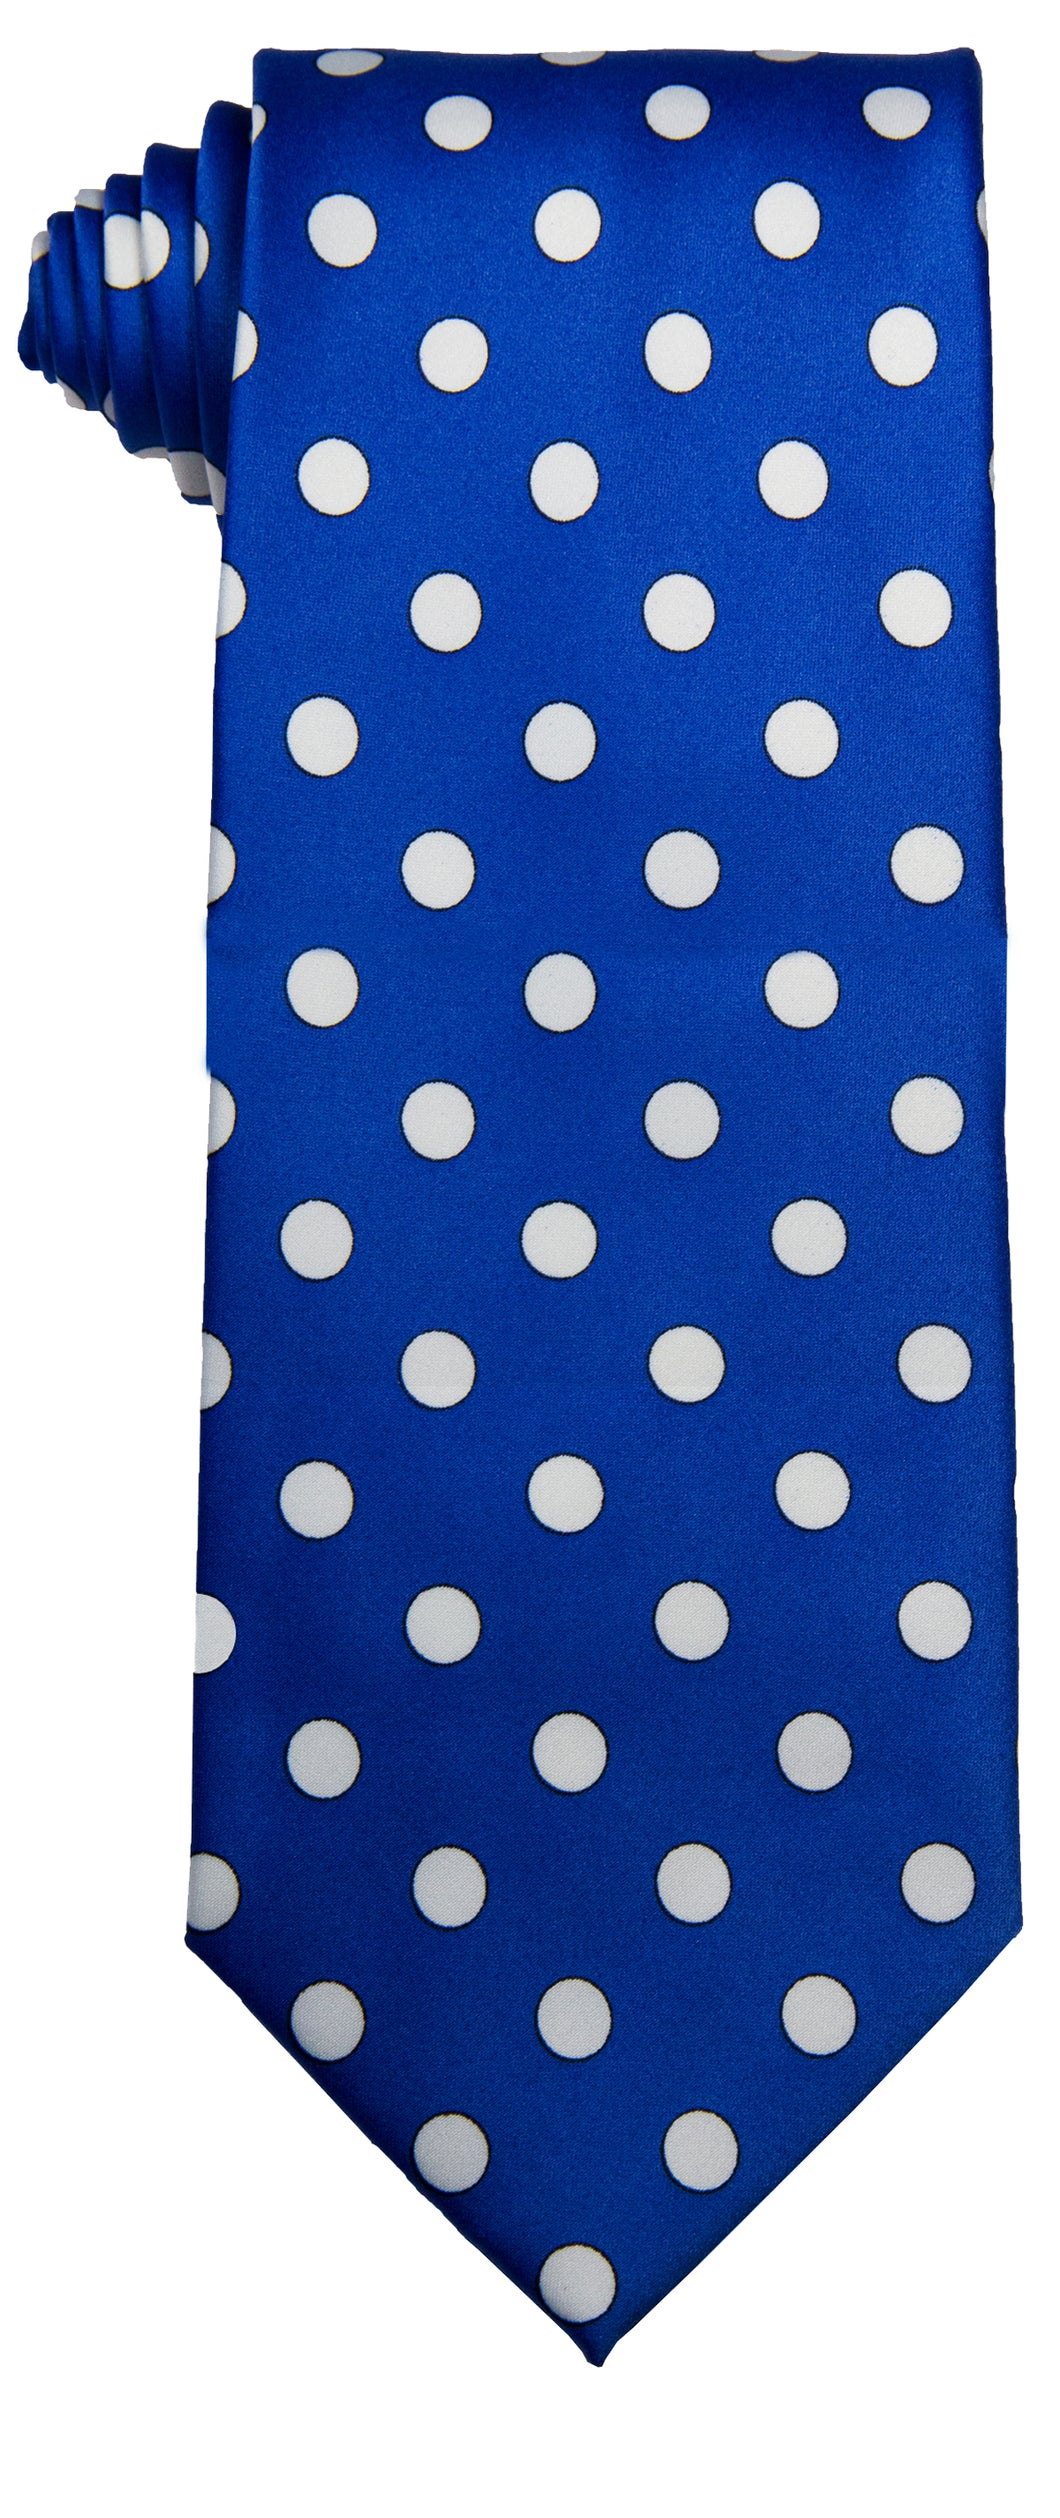 Royal & White Polka dot Tie